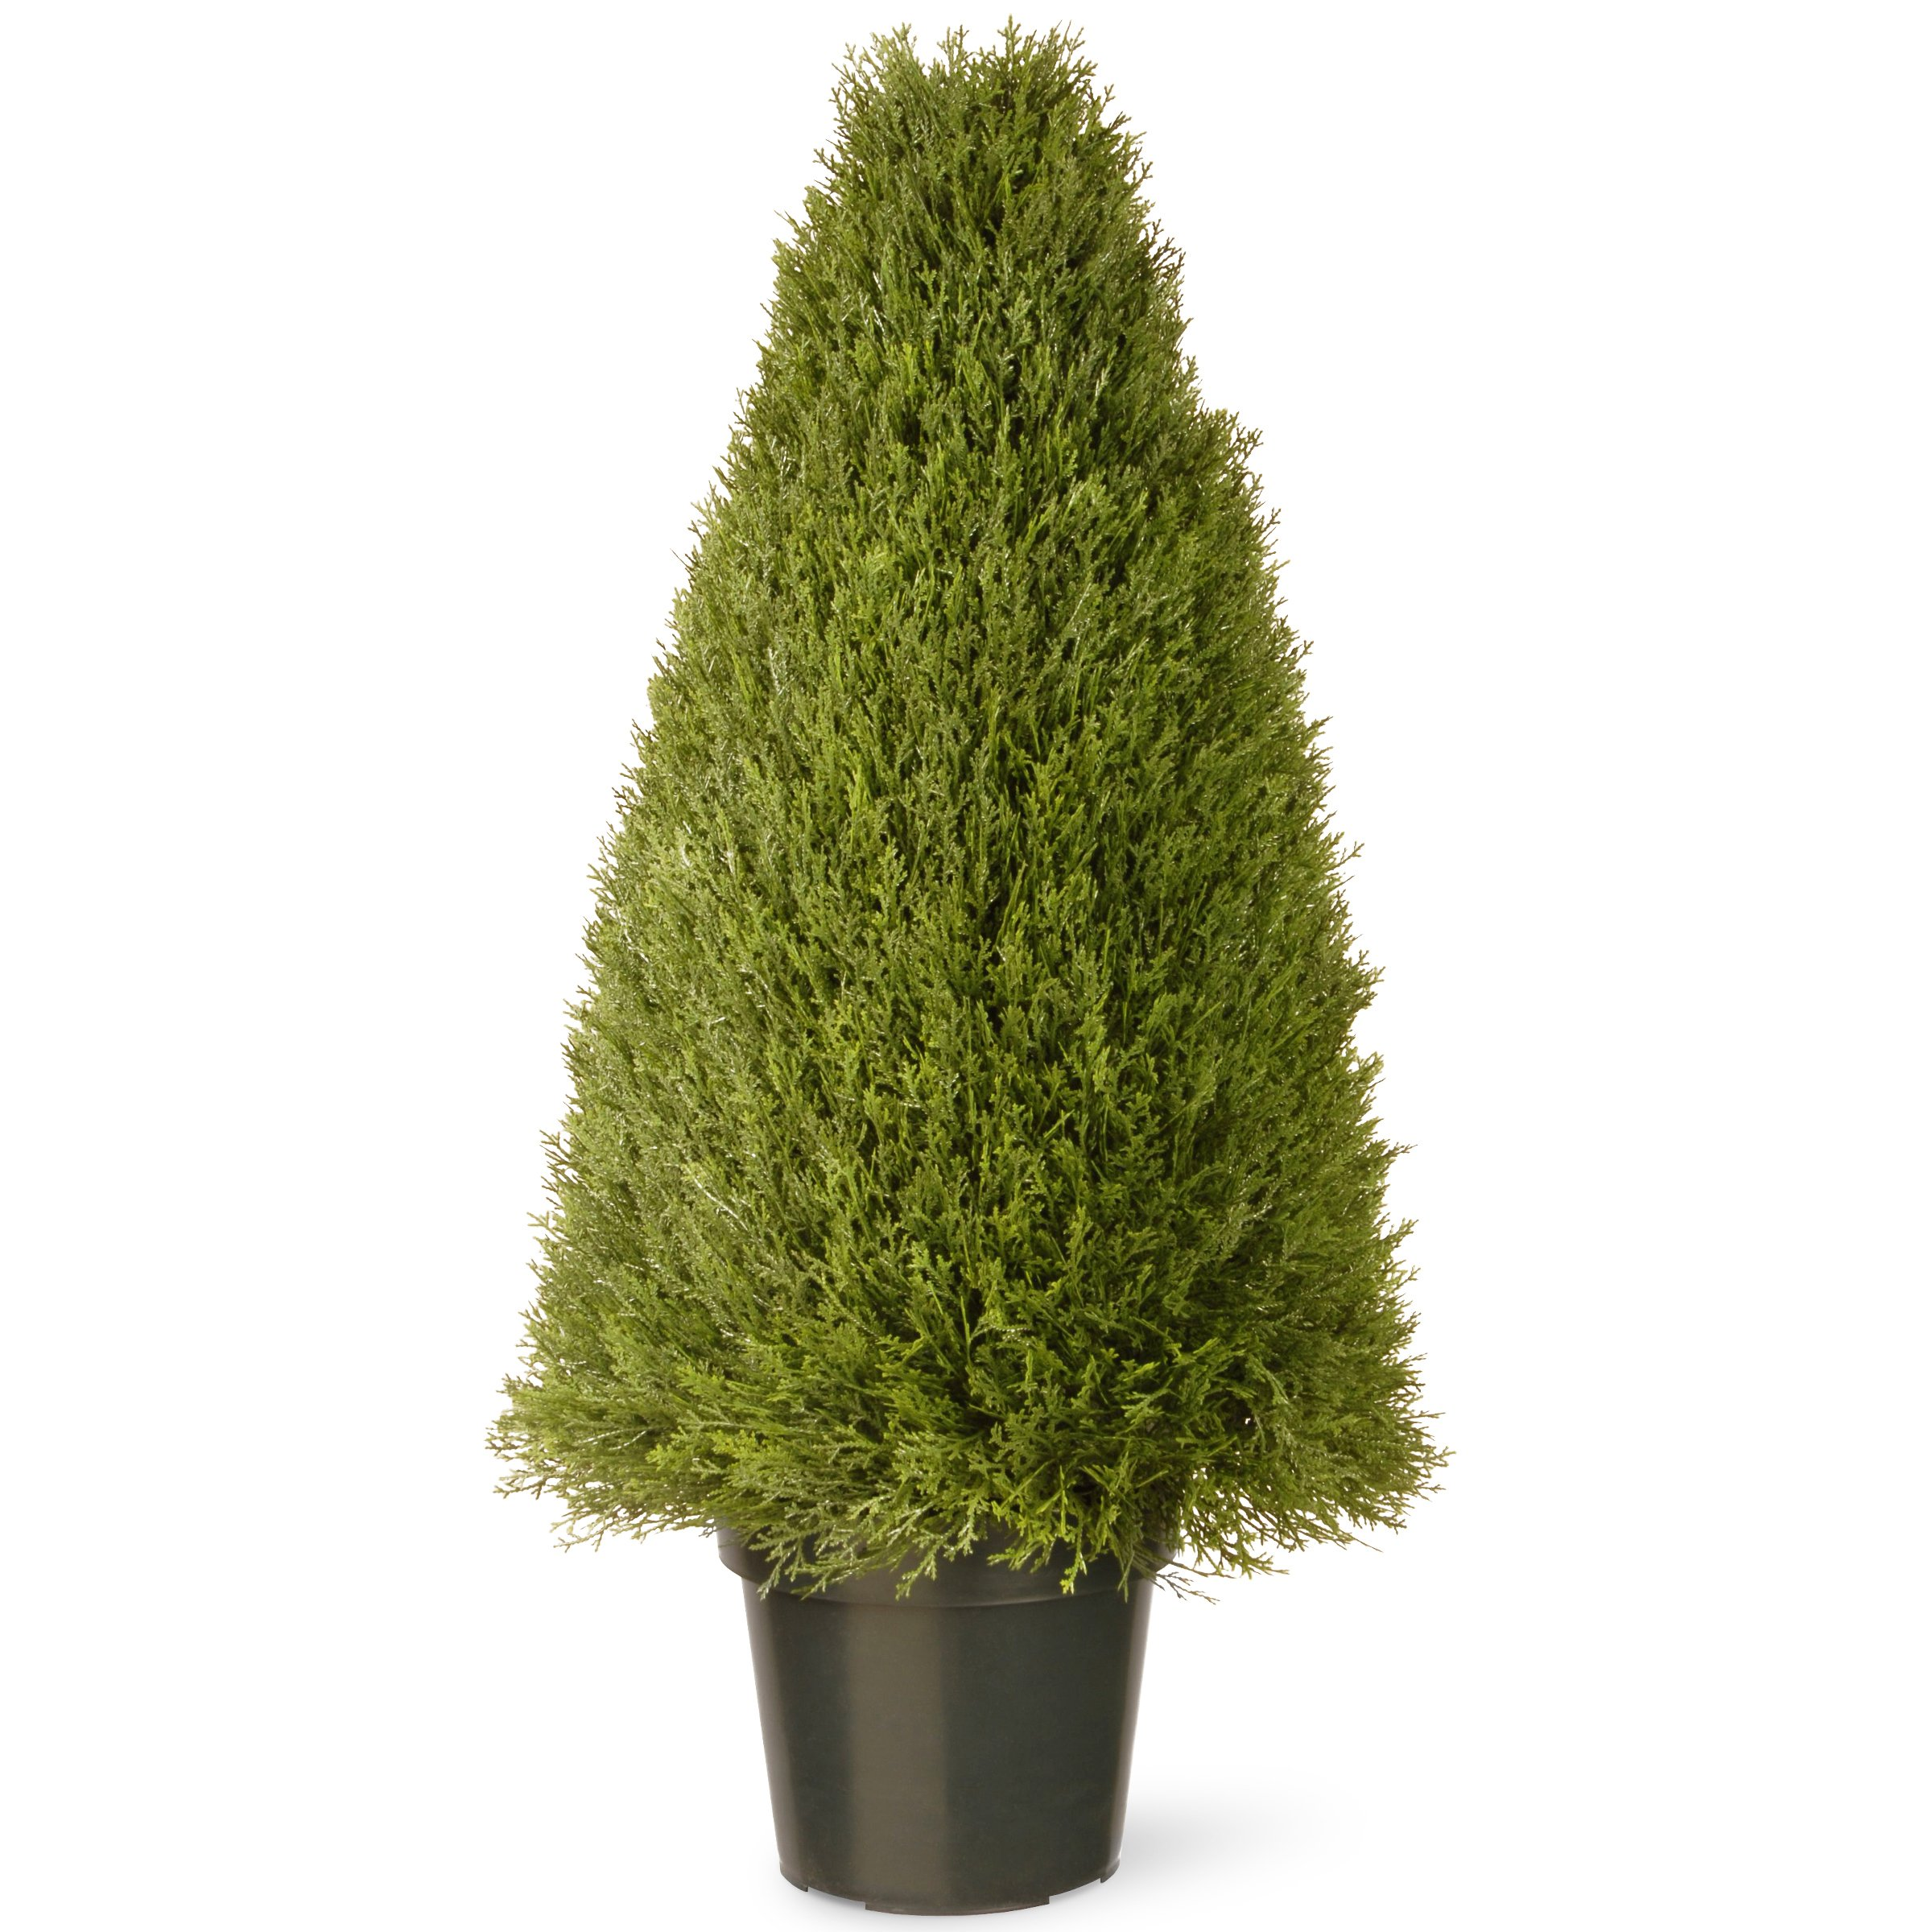 National Tree 36 Inch Upright Juniper Tree in Green Round Plastic Pot (LCY4-36) by National Tree Company